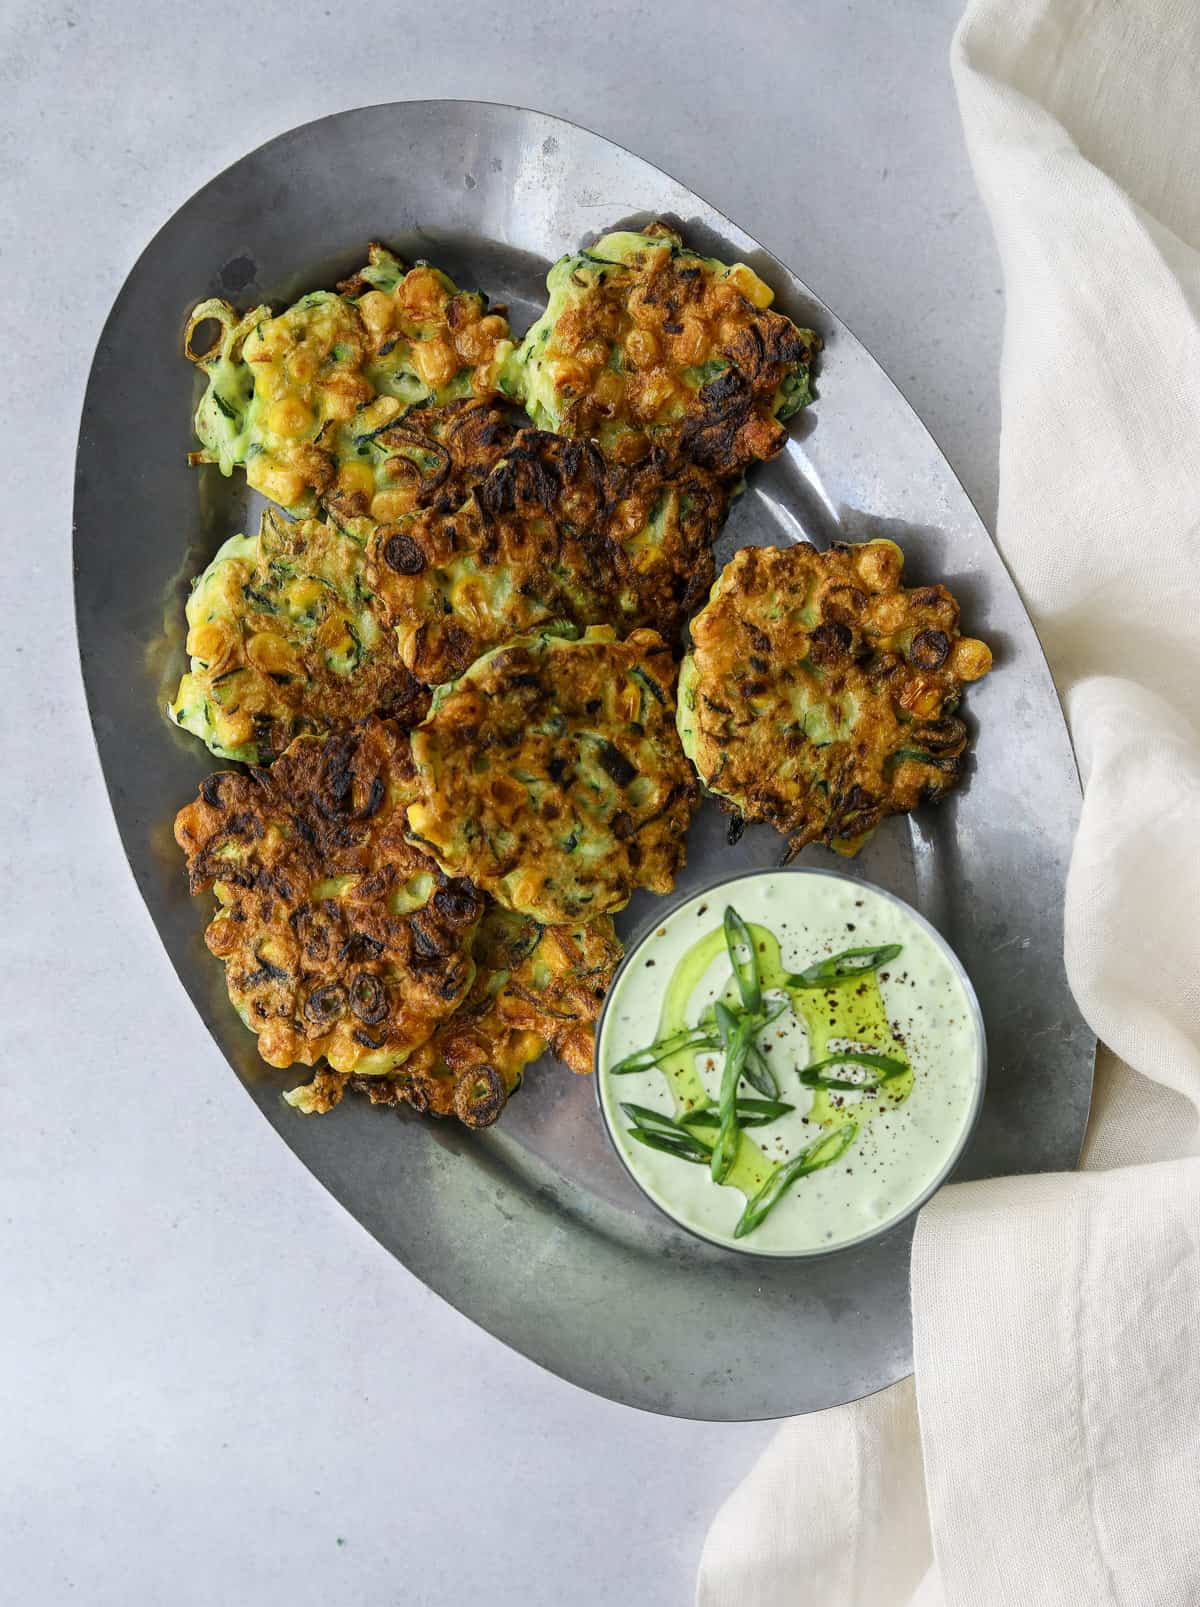 an oval, silver tray filled with corn and zucchini fritters with a side of green goddess dip and a white linen napkin